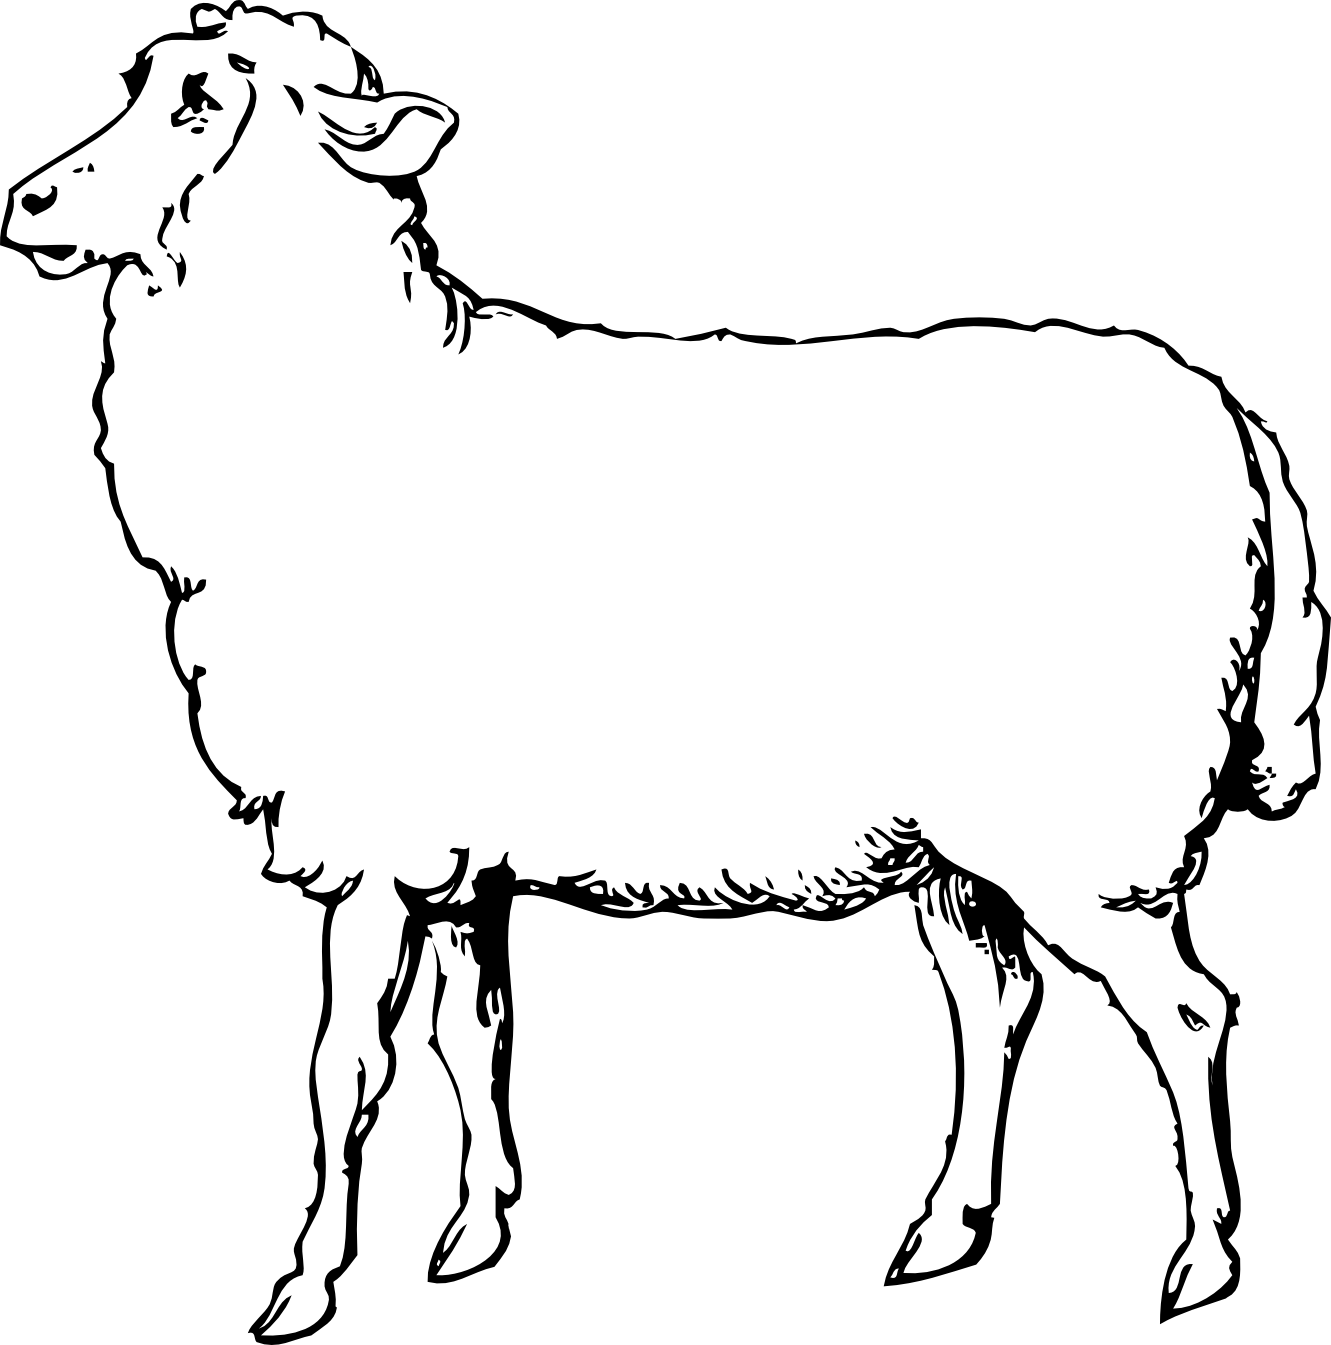 1331x1345 Image Of Black Sheep Clipart